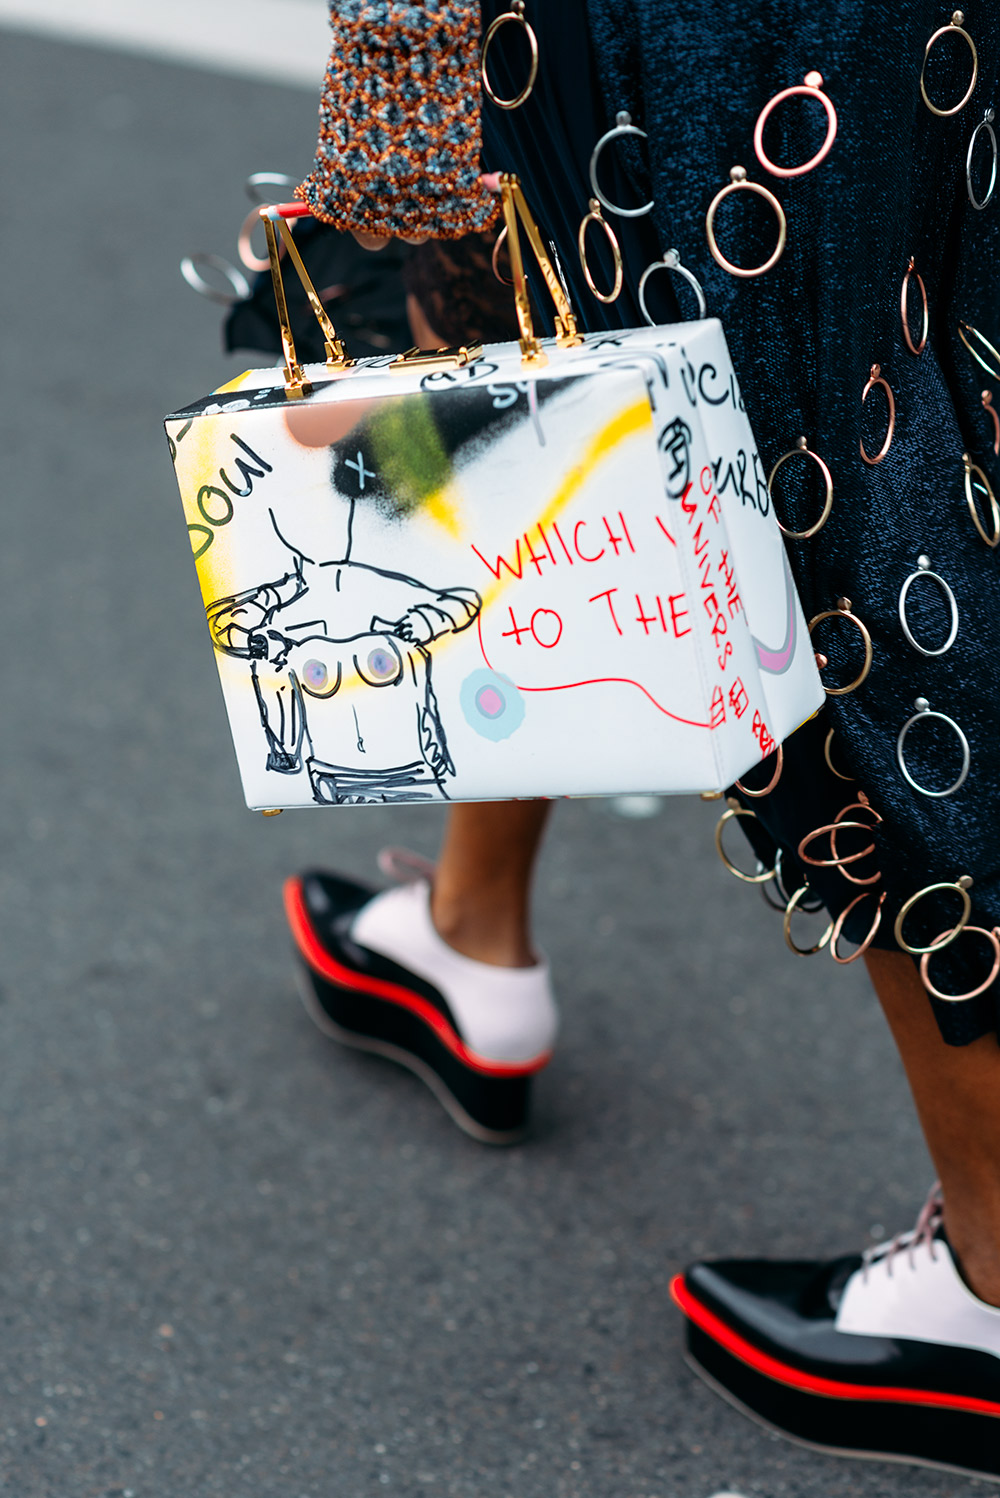 Paris Fashion Week Streetstyle by The Petticoat -Michelle Elie Marc Jacobs Bag after Stella McCartney